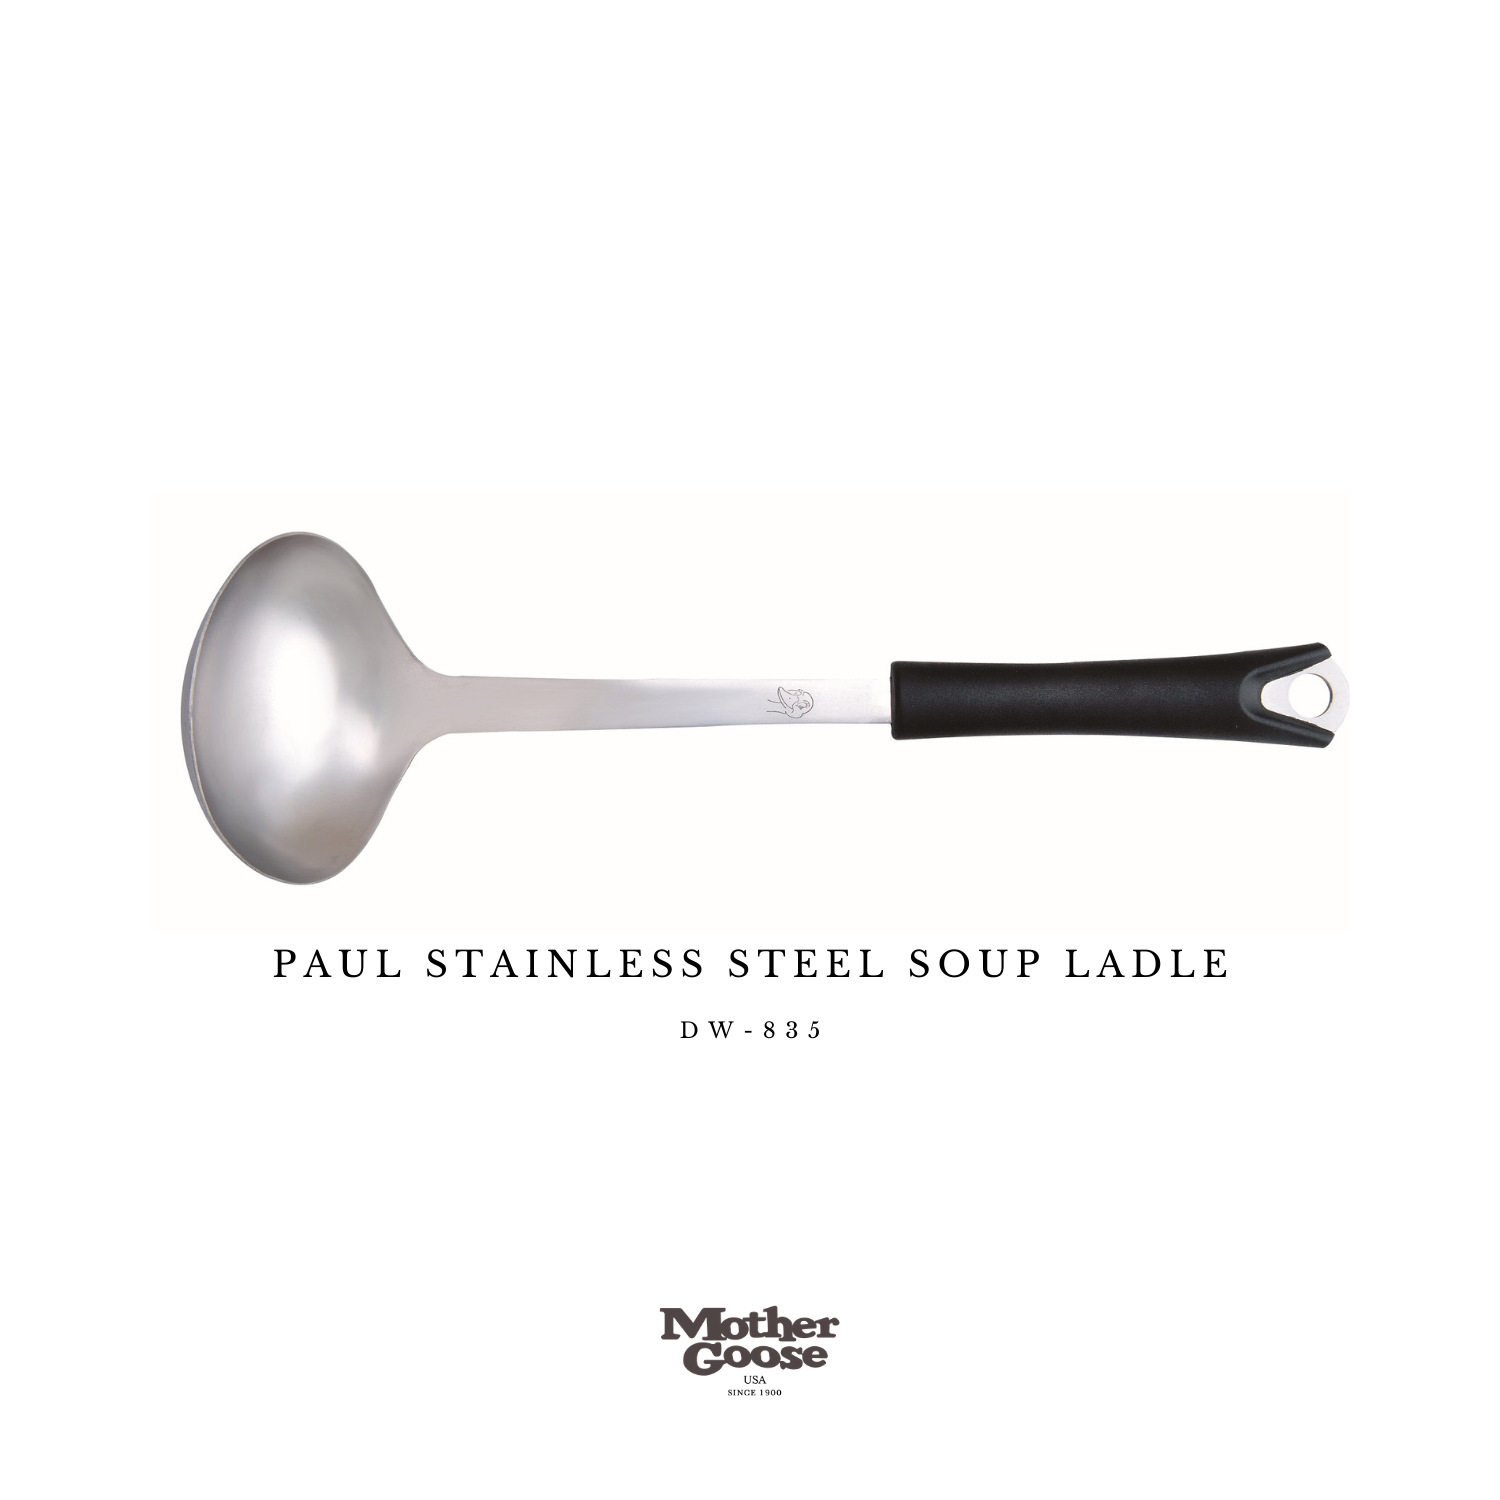 PAUL STAINLESS STEEL SOUP LADLE